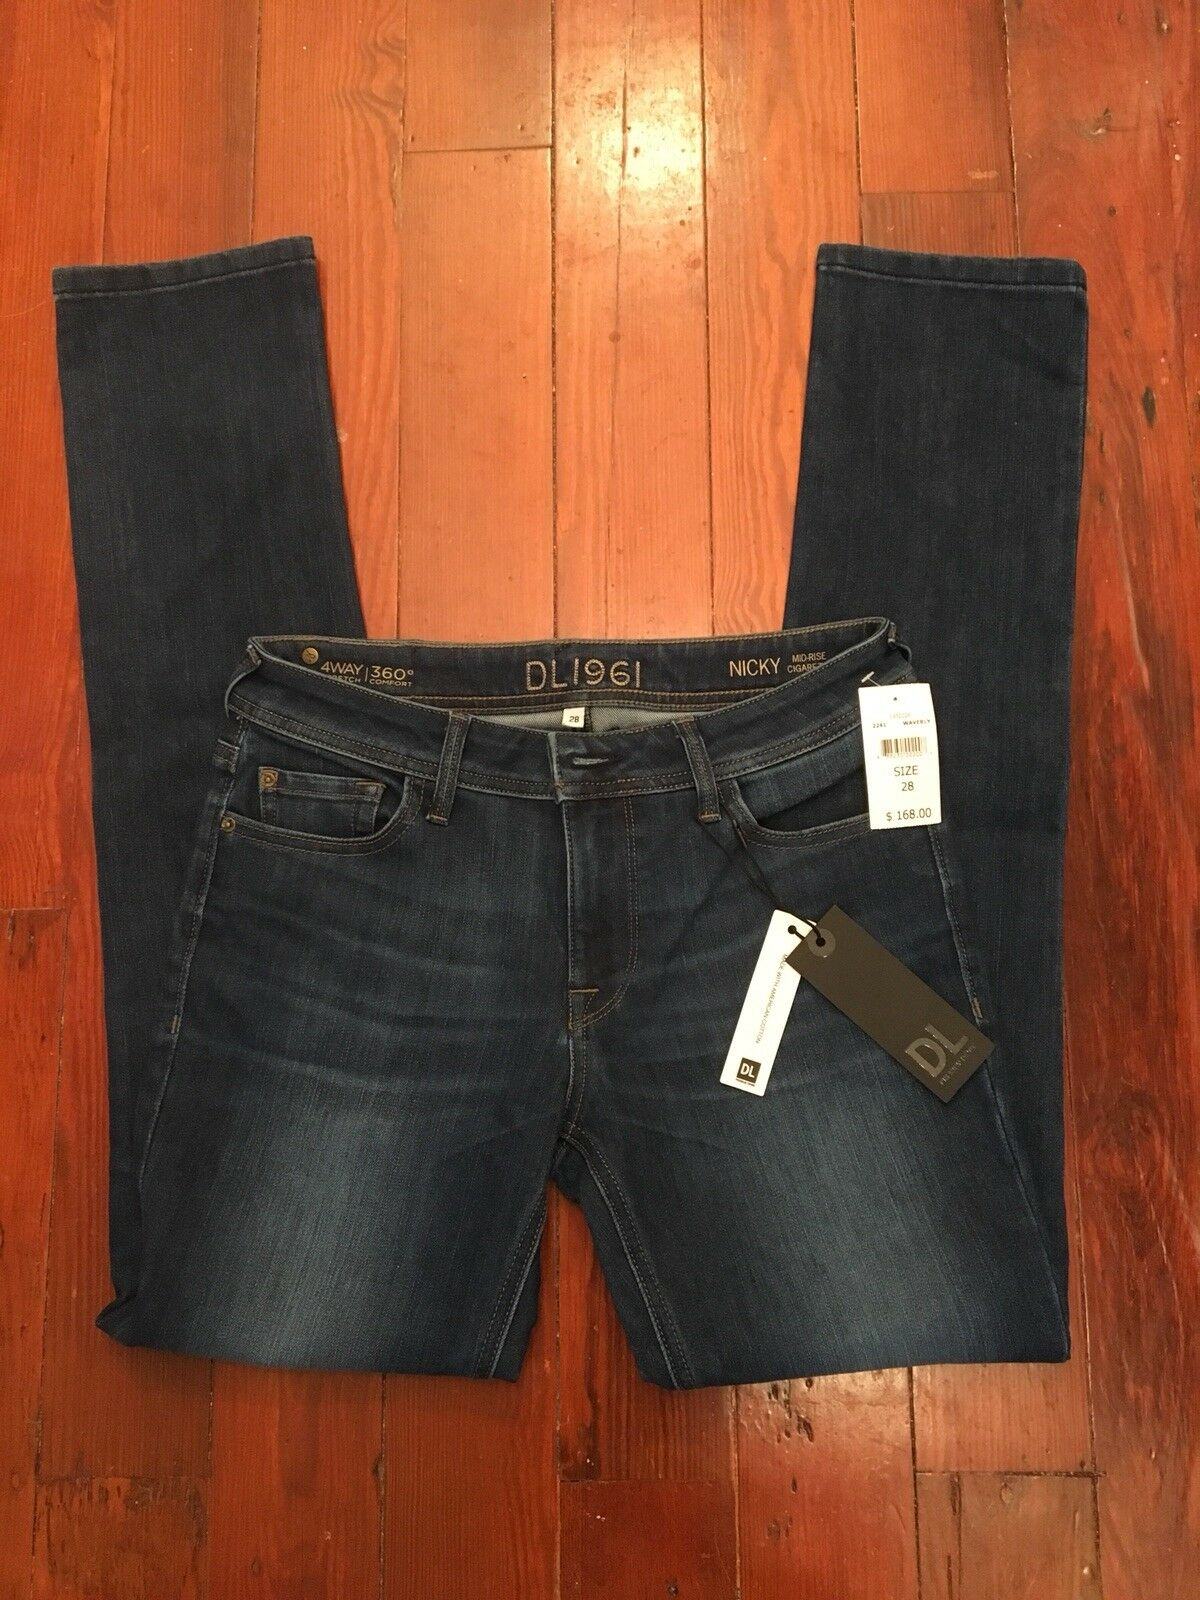 DL 1961 Womens Jeans Nicky Mid-Rise Cigarette Waverly 2241 Size 28  168 NWT